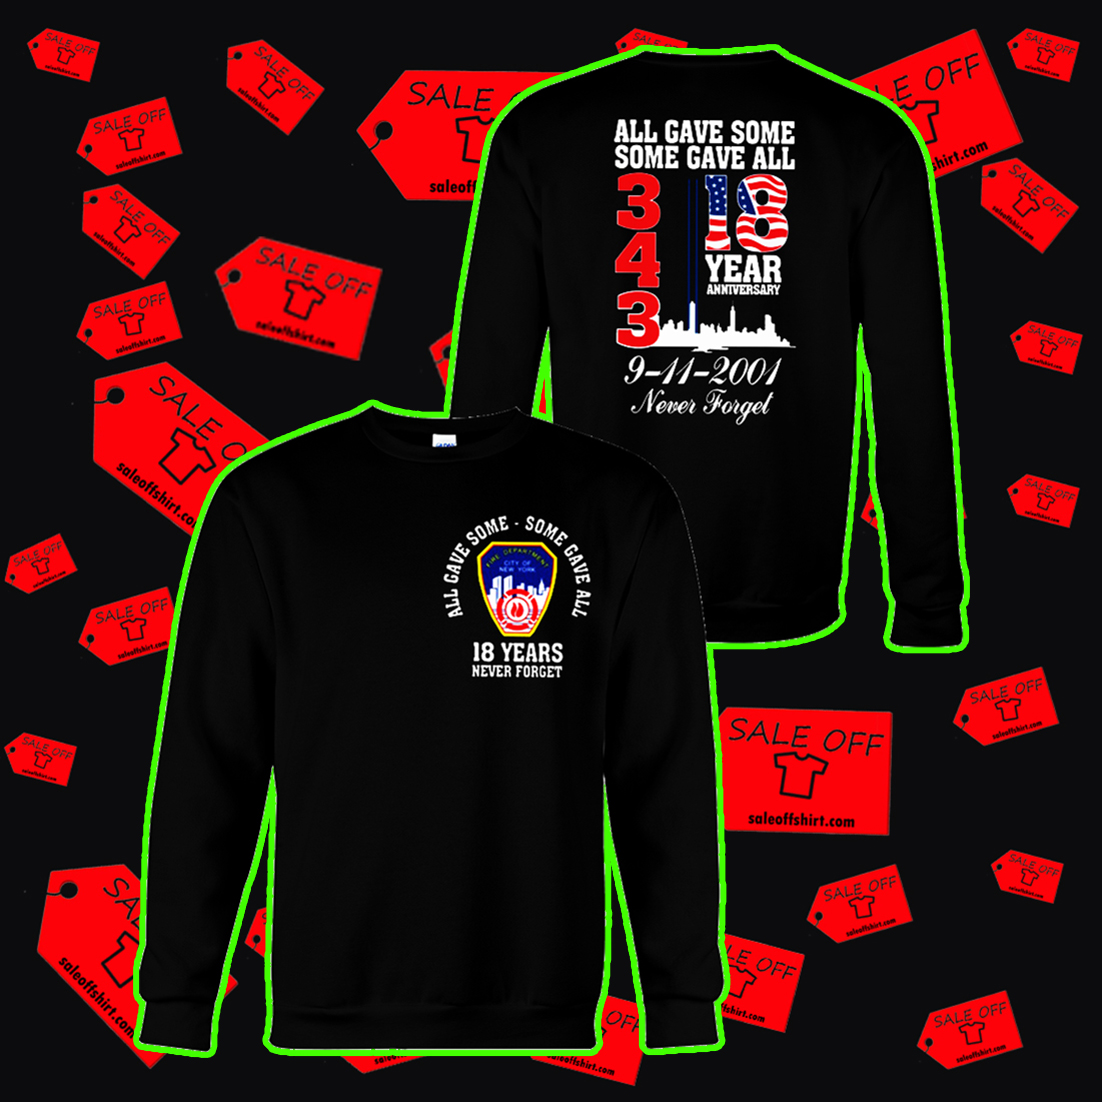 343 all gave some some gave all 18 years anniversary sweatshirt